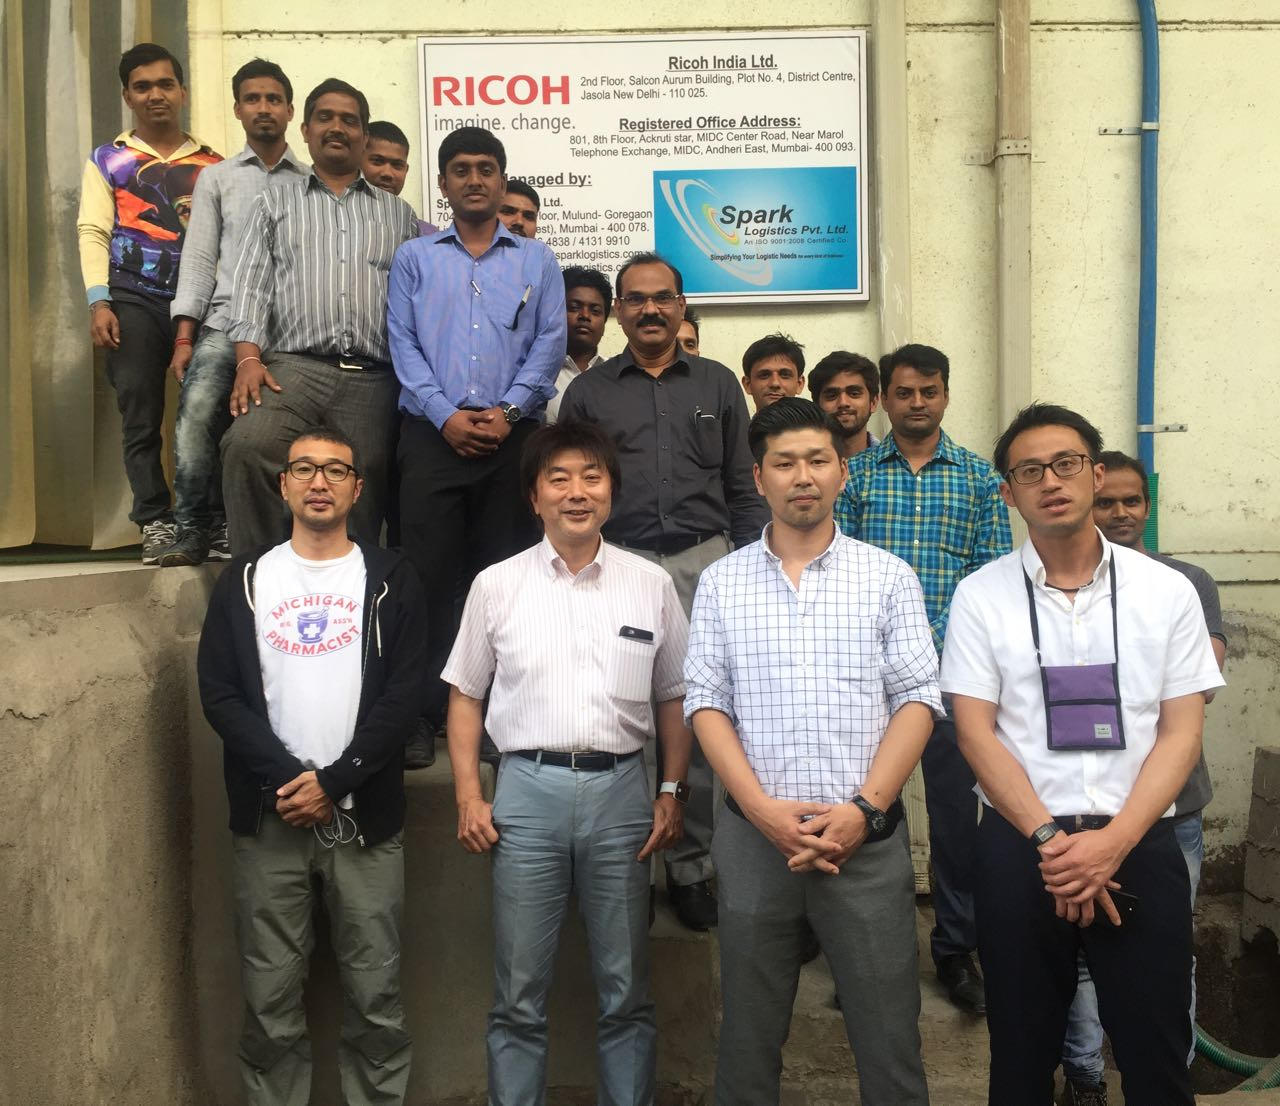 Ricoh Team Japan visited the Spark Logistics